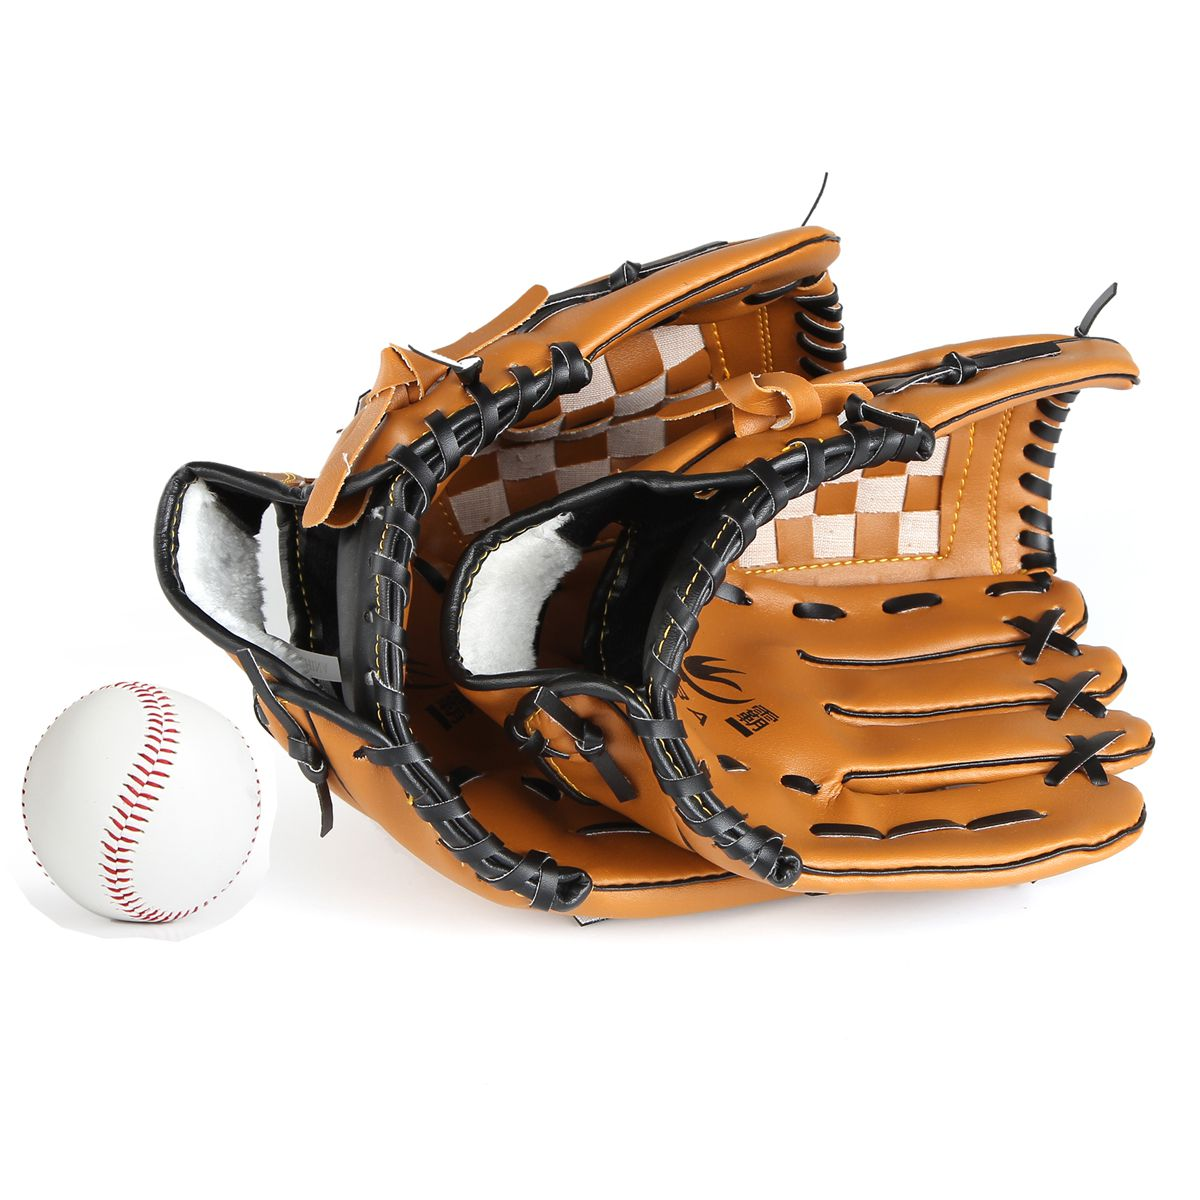 Batting Leather Baseball Glove Right Baseball Equipment Catcher Practice Hand Weighted Guante Beisbol Sports Accessories BJ50ST